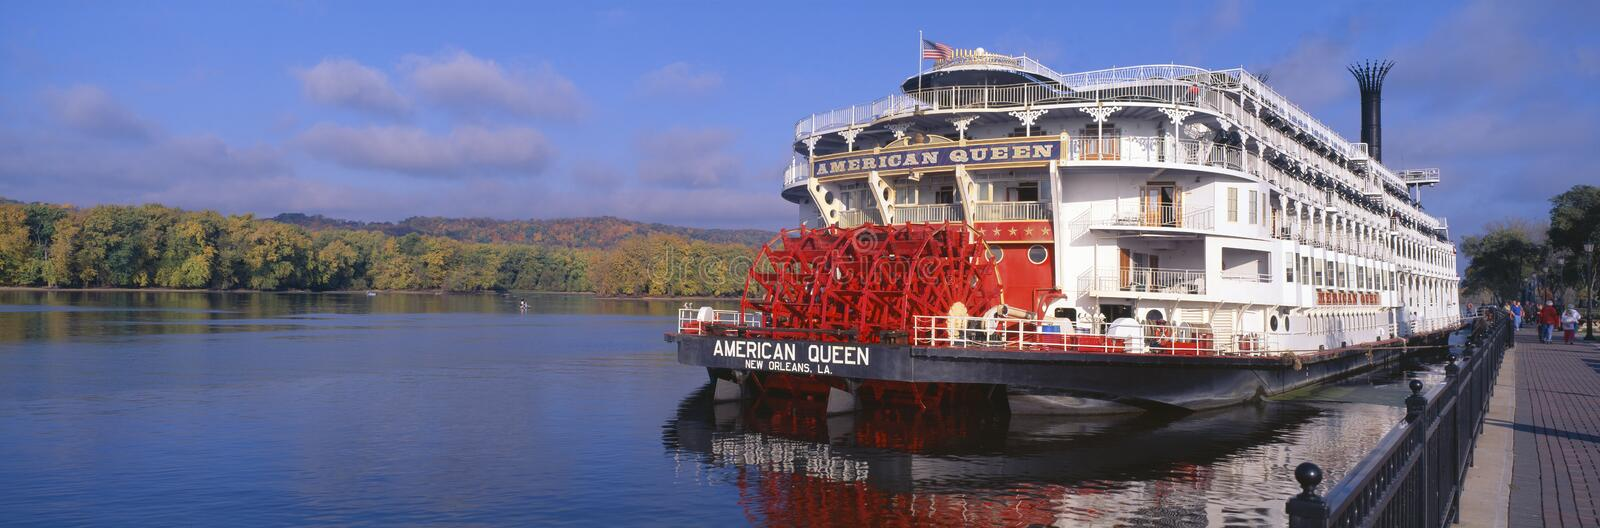 American Queen paddlewheel ship on Mississippi River, Wisconsin royalty free stock photography